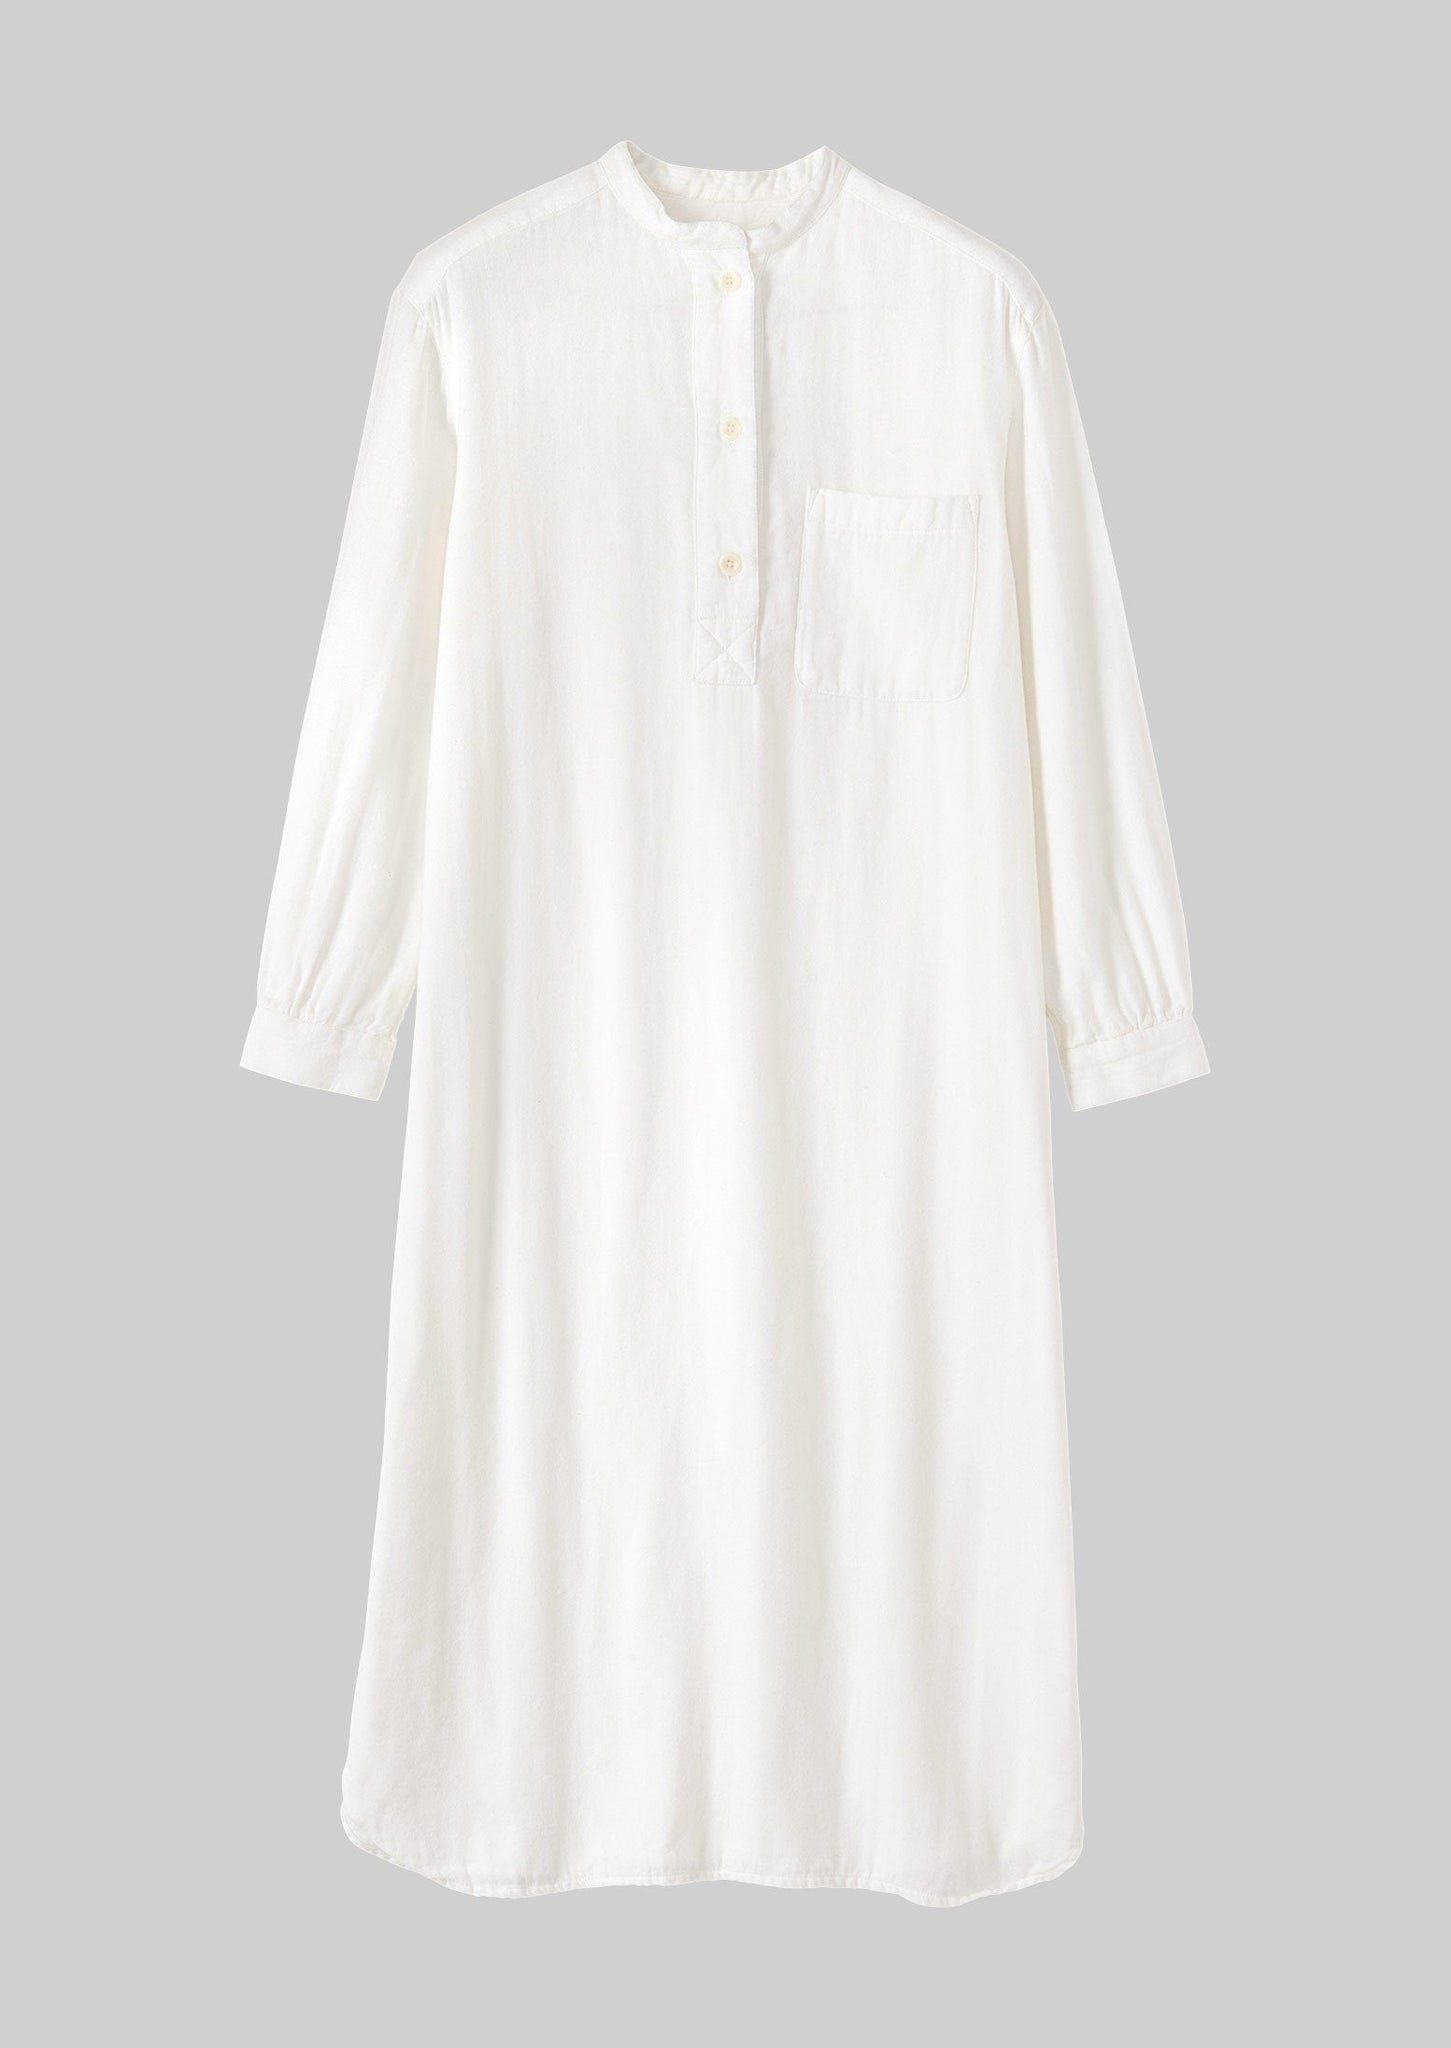 Bea Soft Double Cotton Nightshirt | Parchment ?id=16768498237474